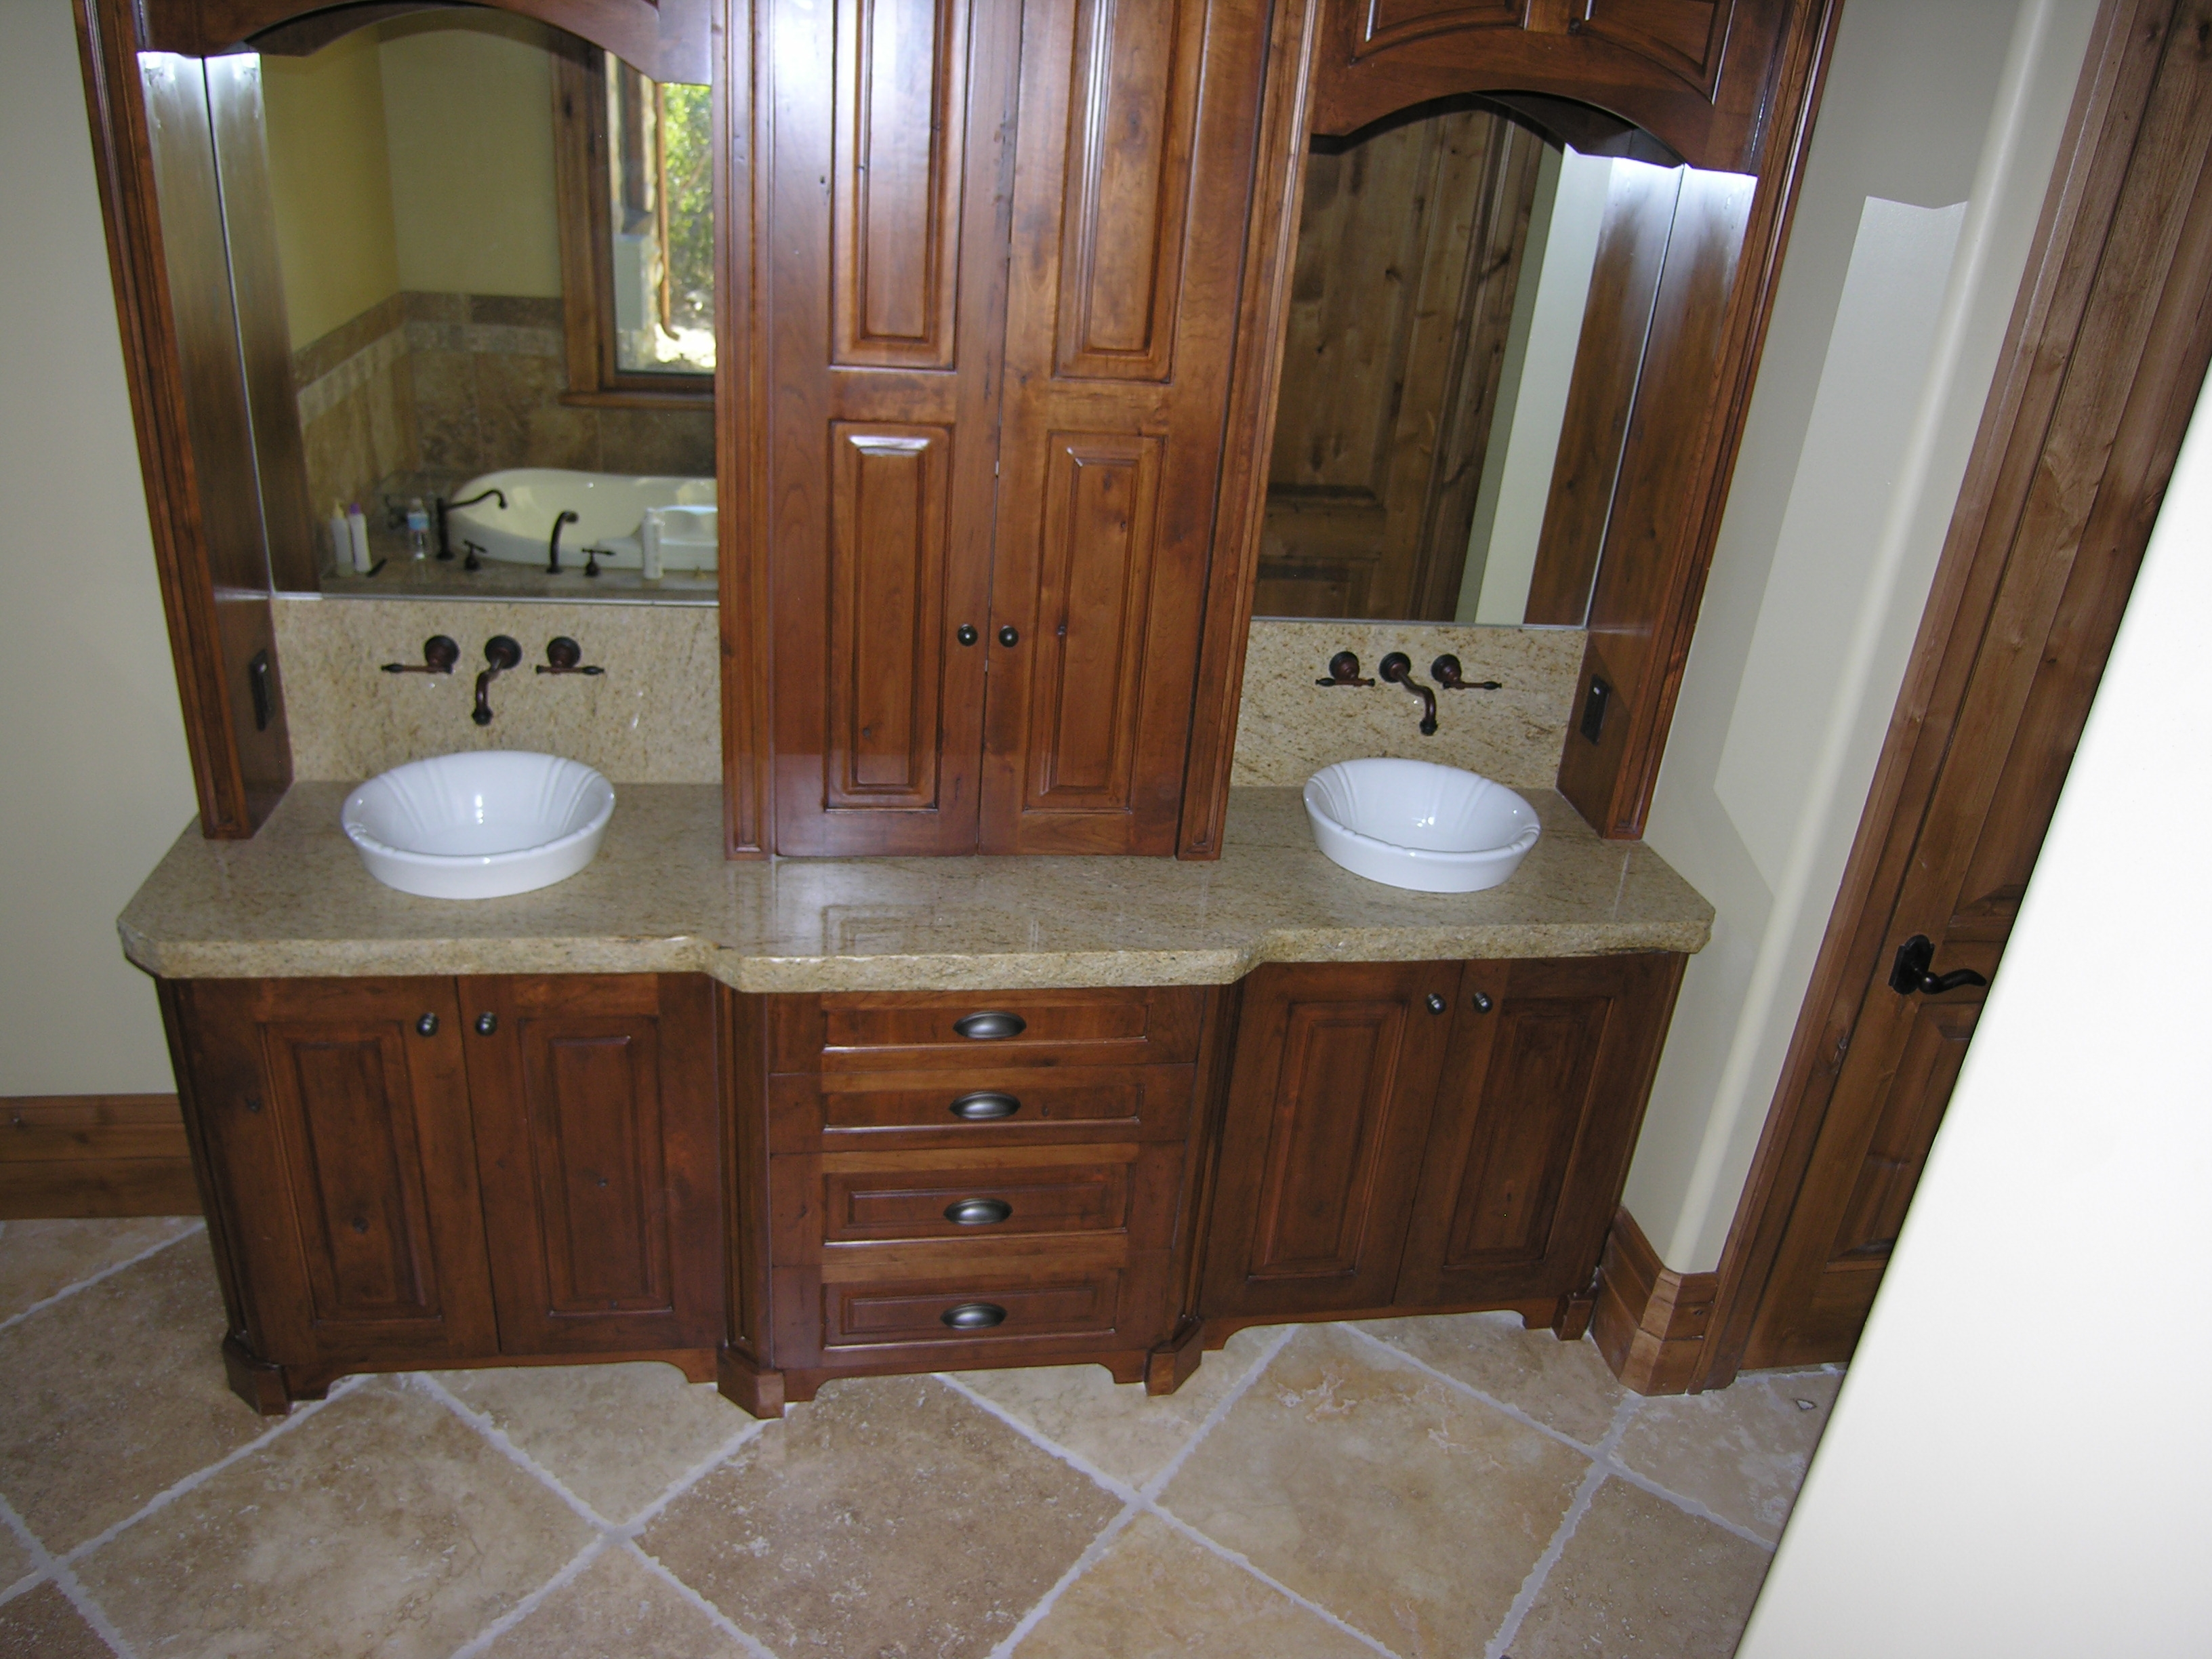 56 Inch Bathroom Vanity Without Top